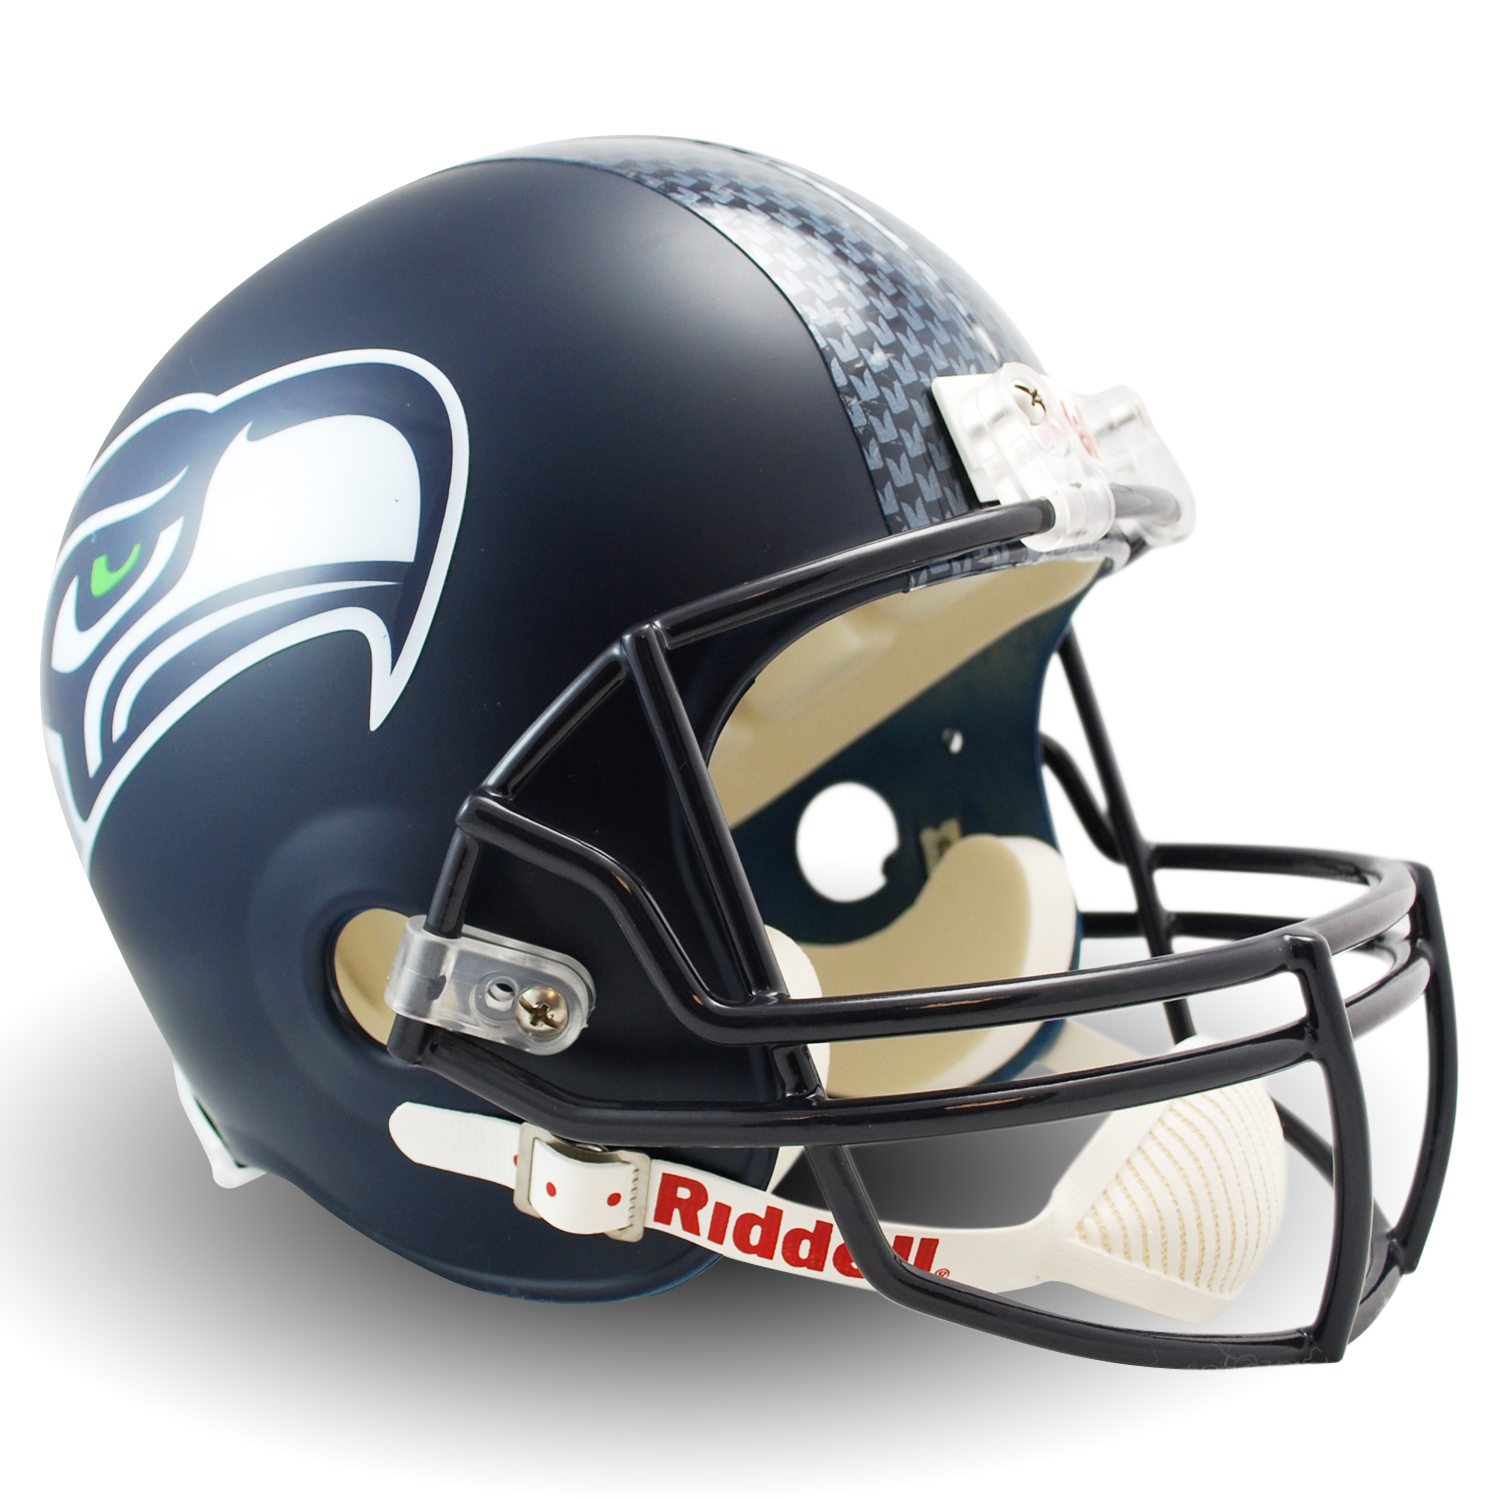 Seattle Seahawks Deluxe Replica Helmet